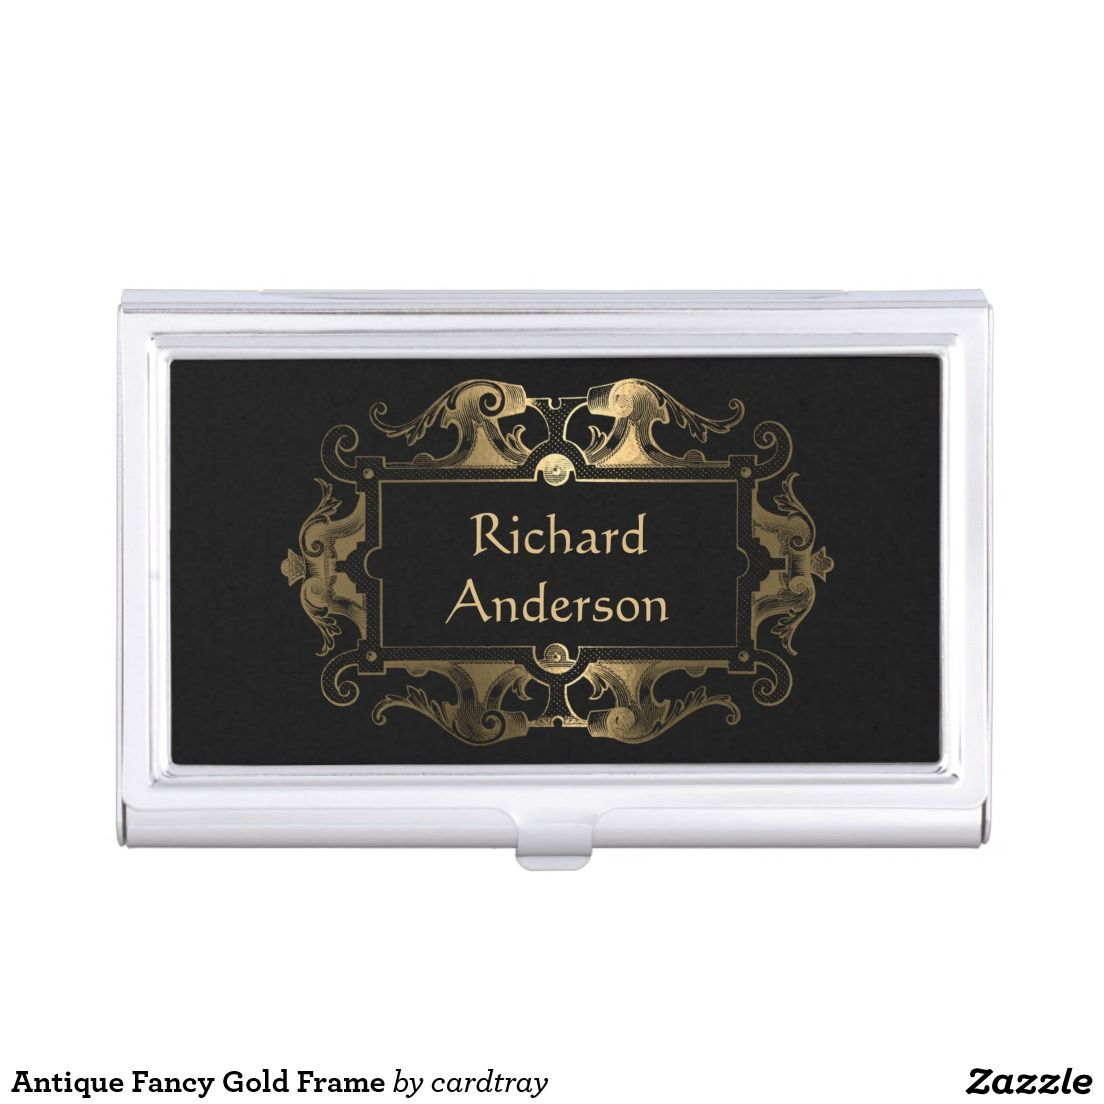 Antique Fancy Gold Frame Business Card Holder: Though this business ...